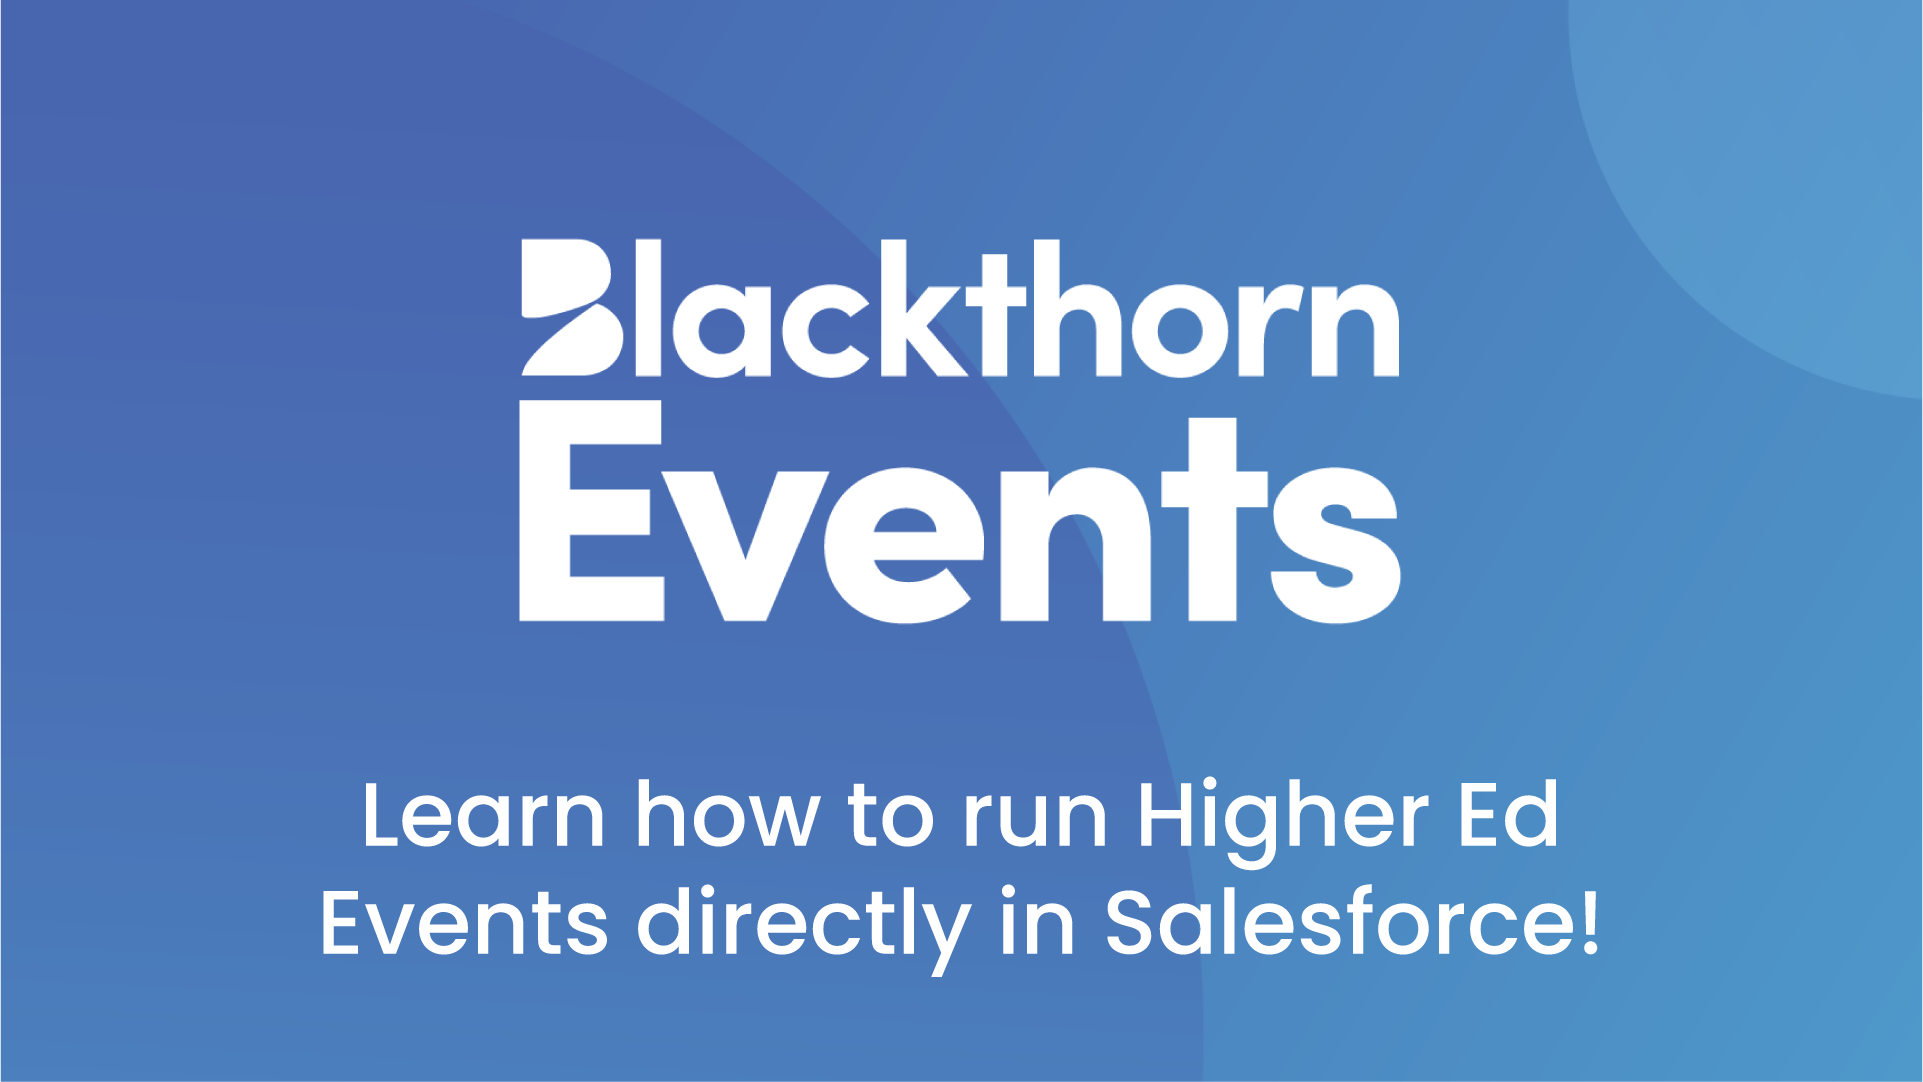 Learn how to run Higher Ed Events directly in Salesforce